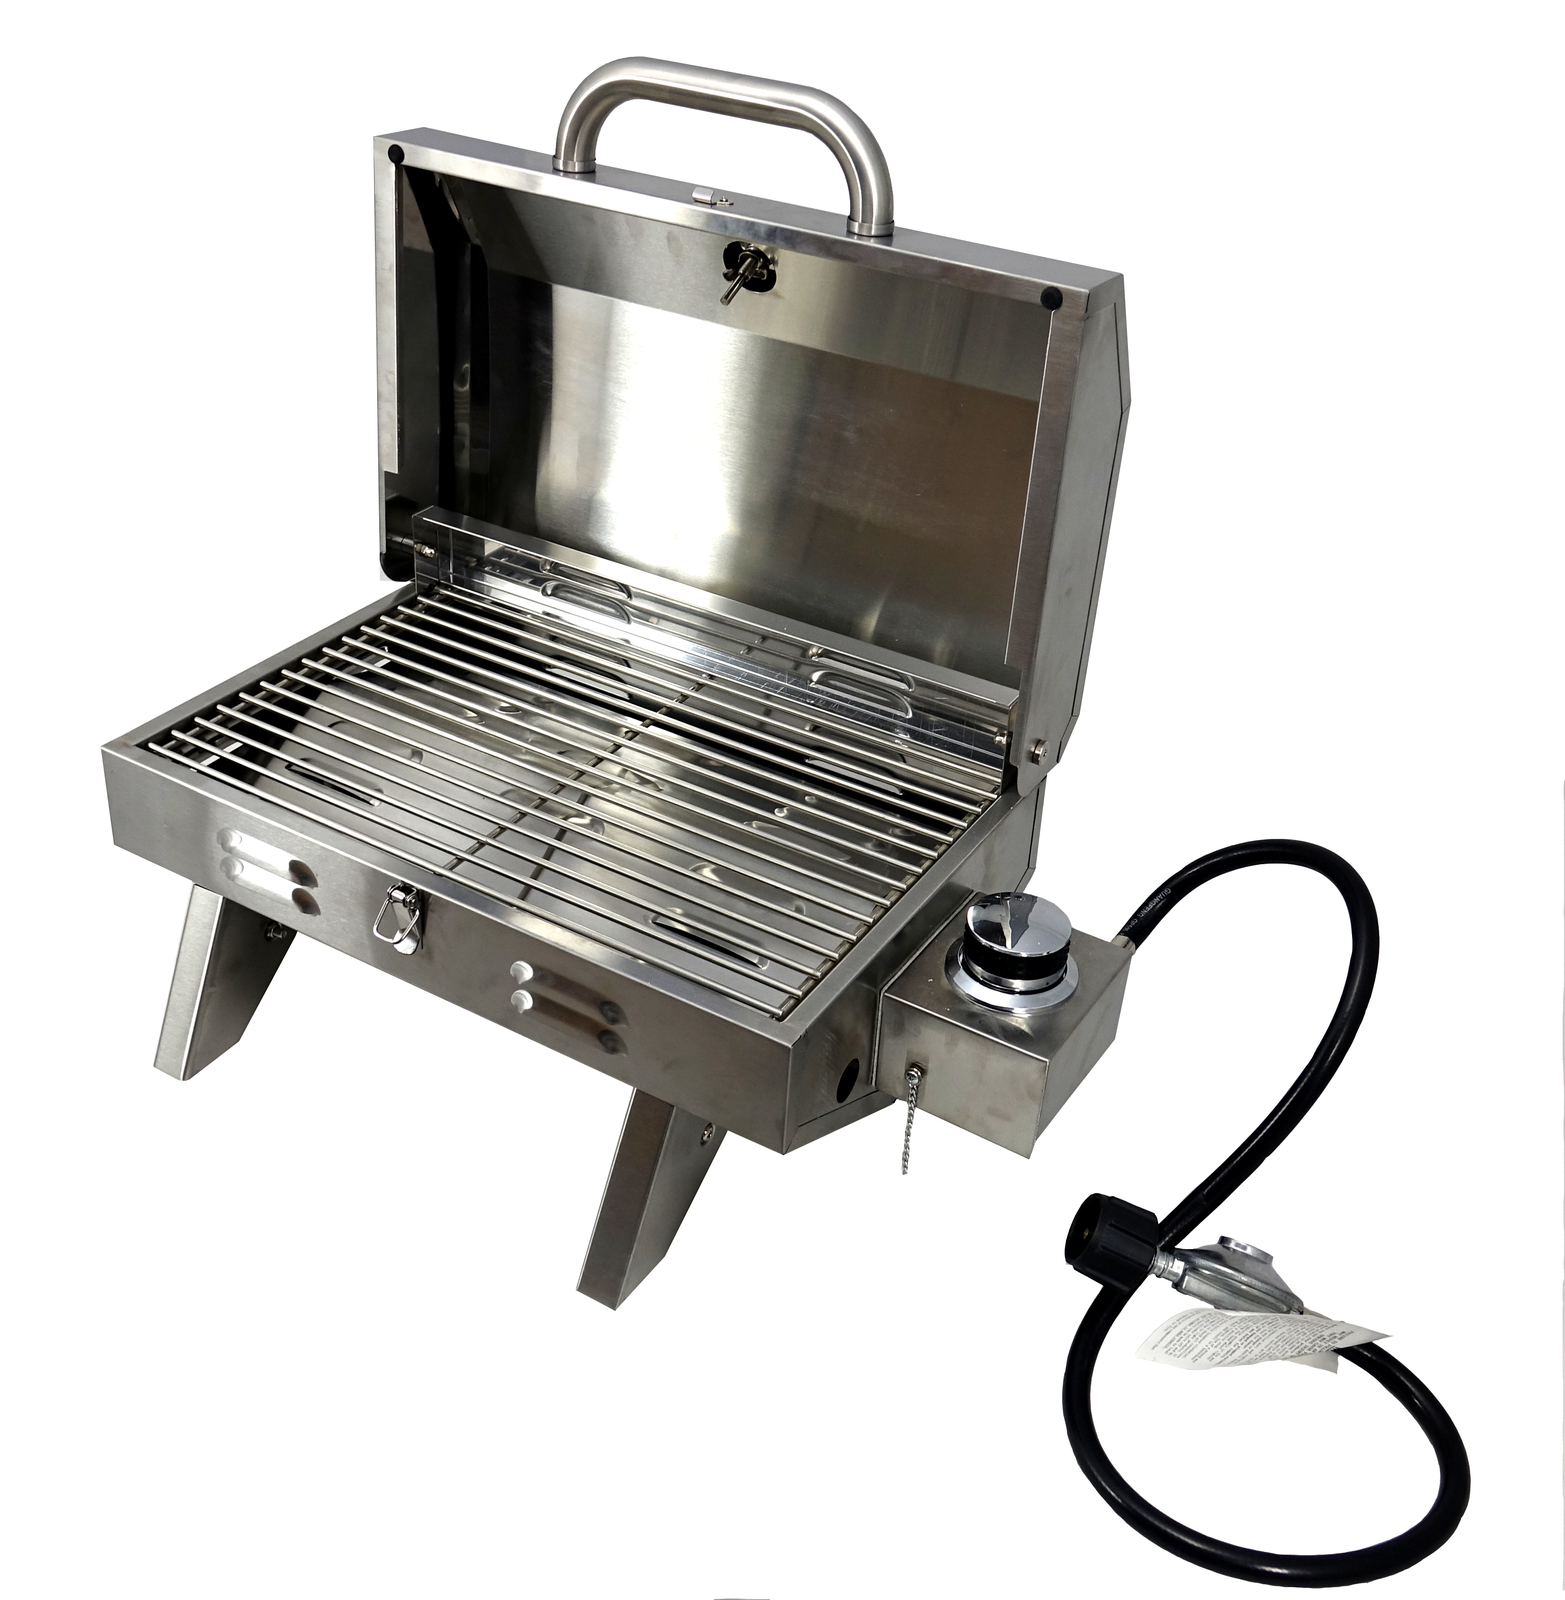 Portable BBQ - Stainless Steel Single Burner image